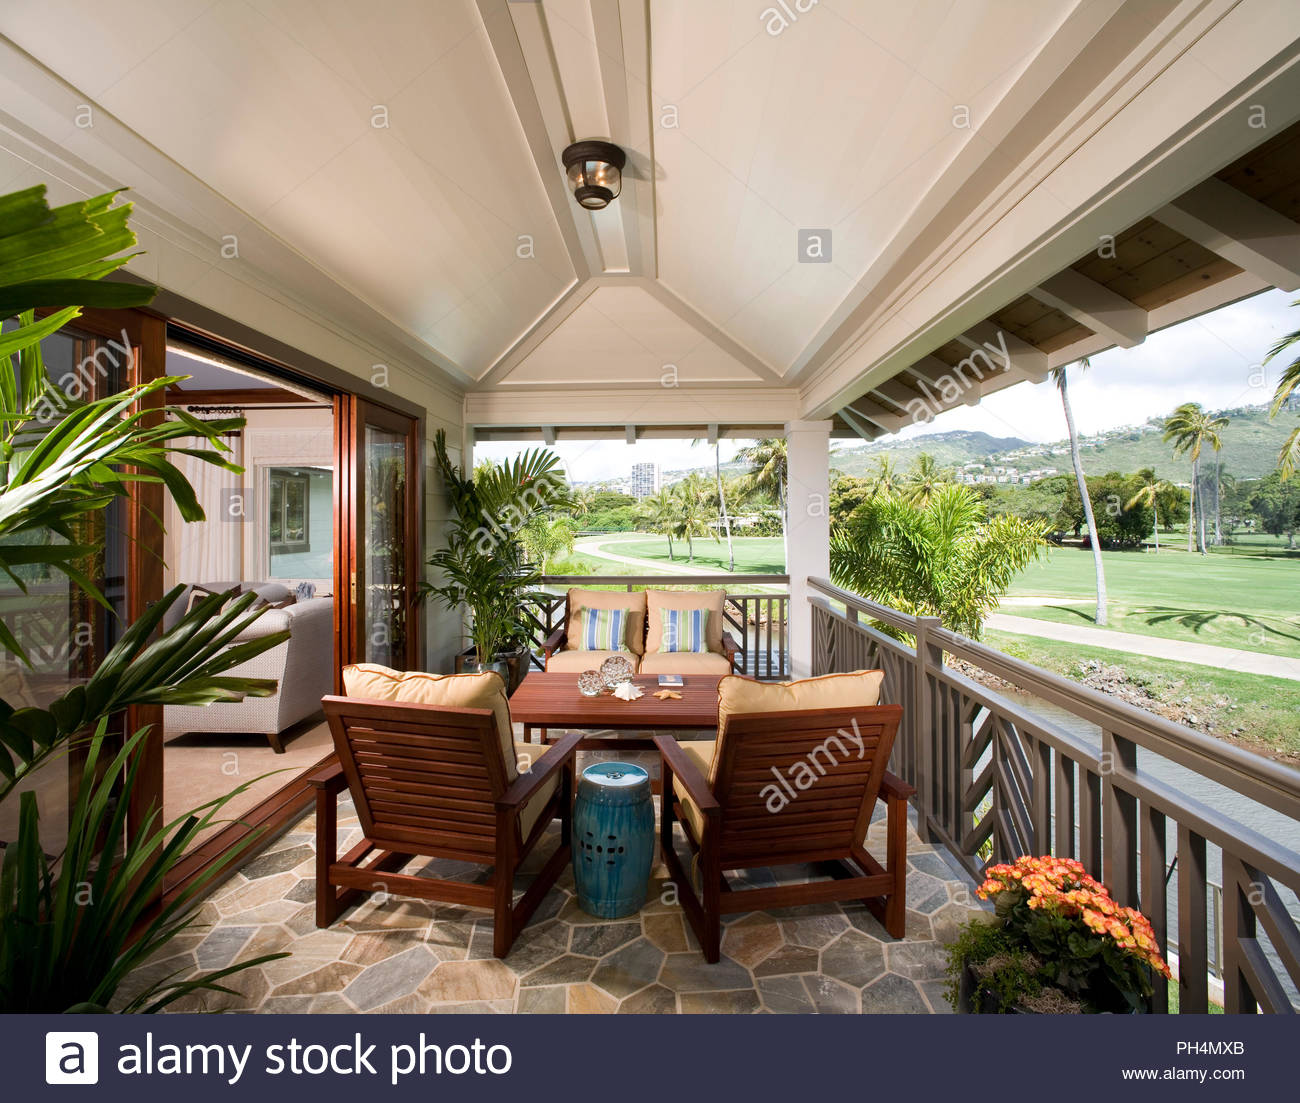 Dining area on balcony - Stock Image